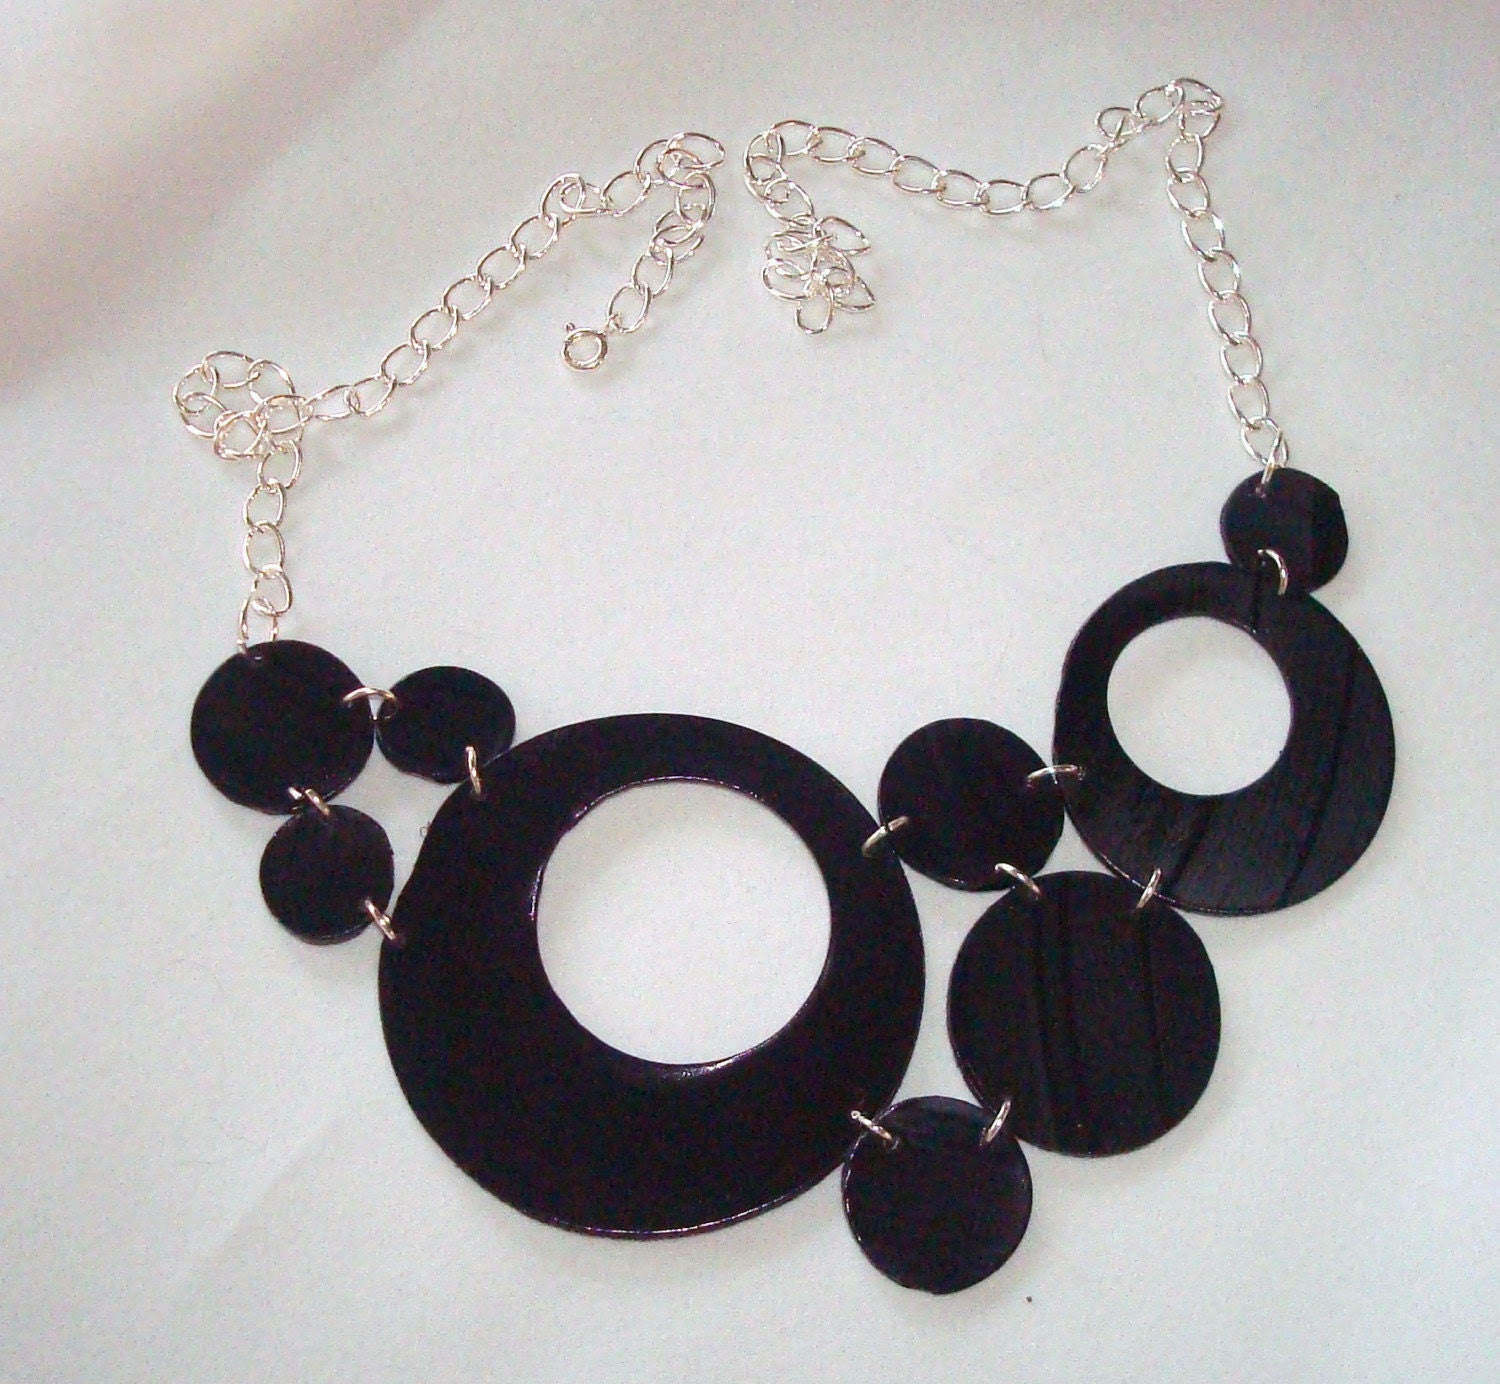 Bubbles upcycled record vinyl necklace